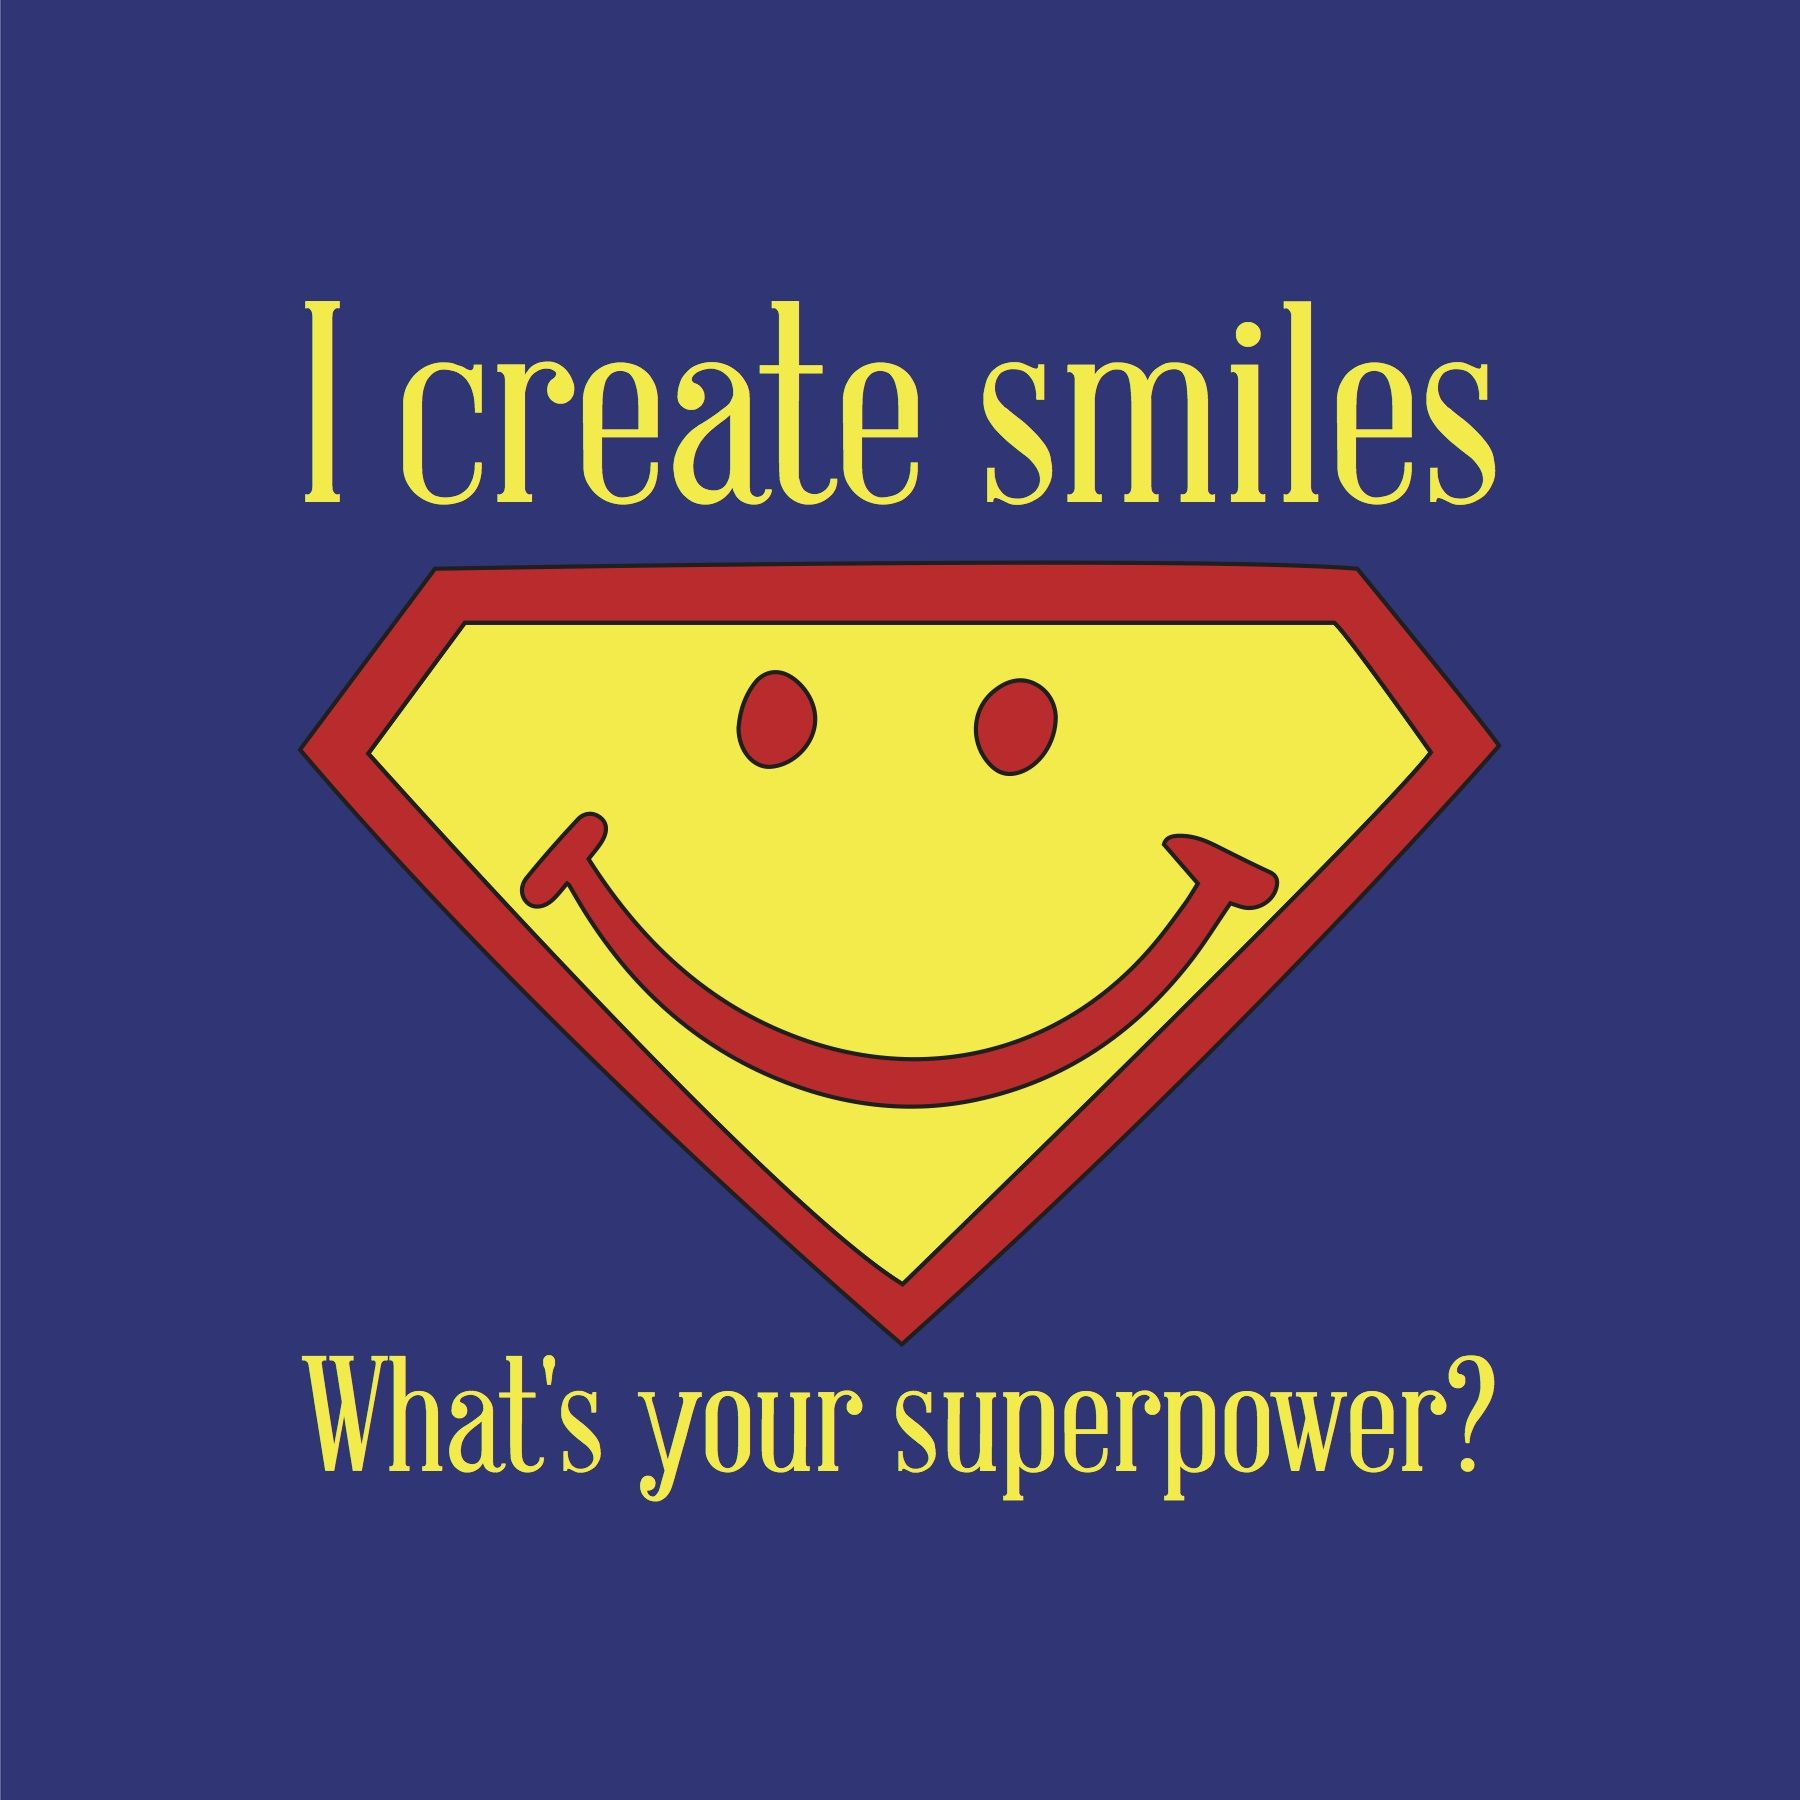 It's World Smile Day. U can uplift others with a smile ...